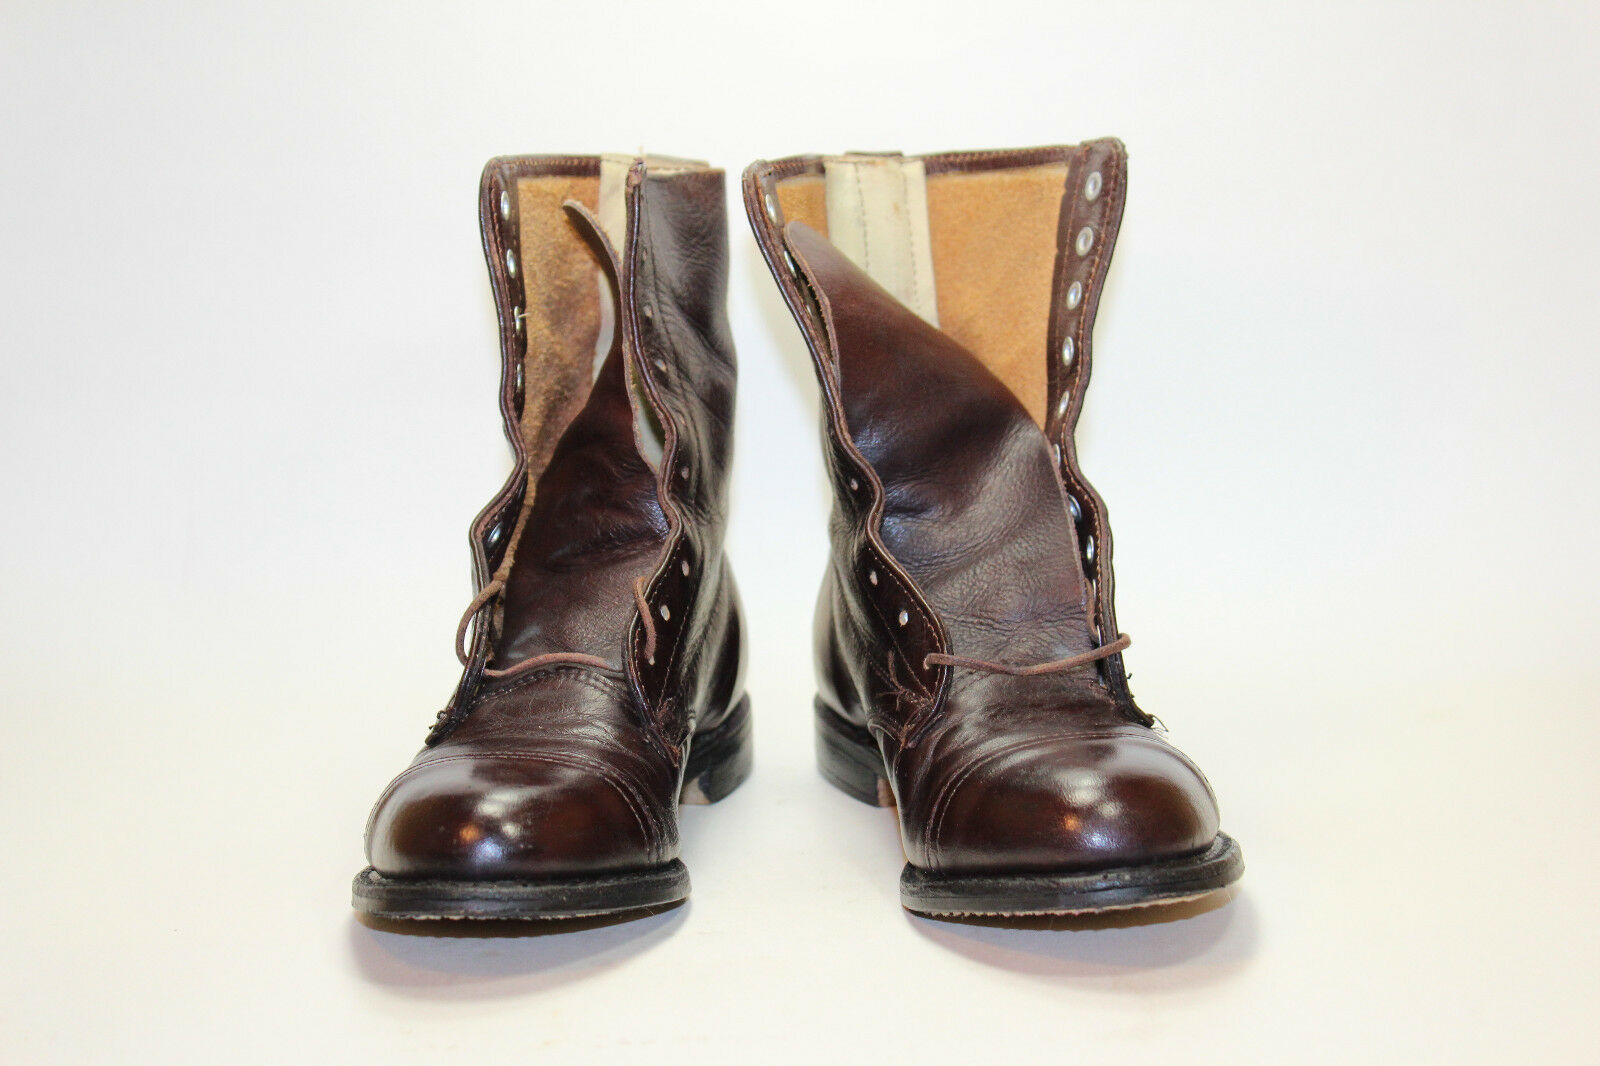 Service Riding Apparel - Grand Prix Laced Horse  Riding shoes  ldren Size 3  general high quality